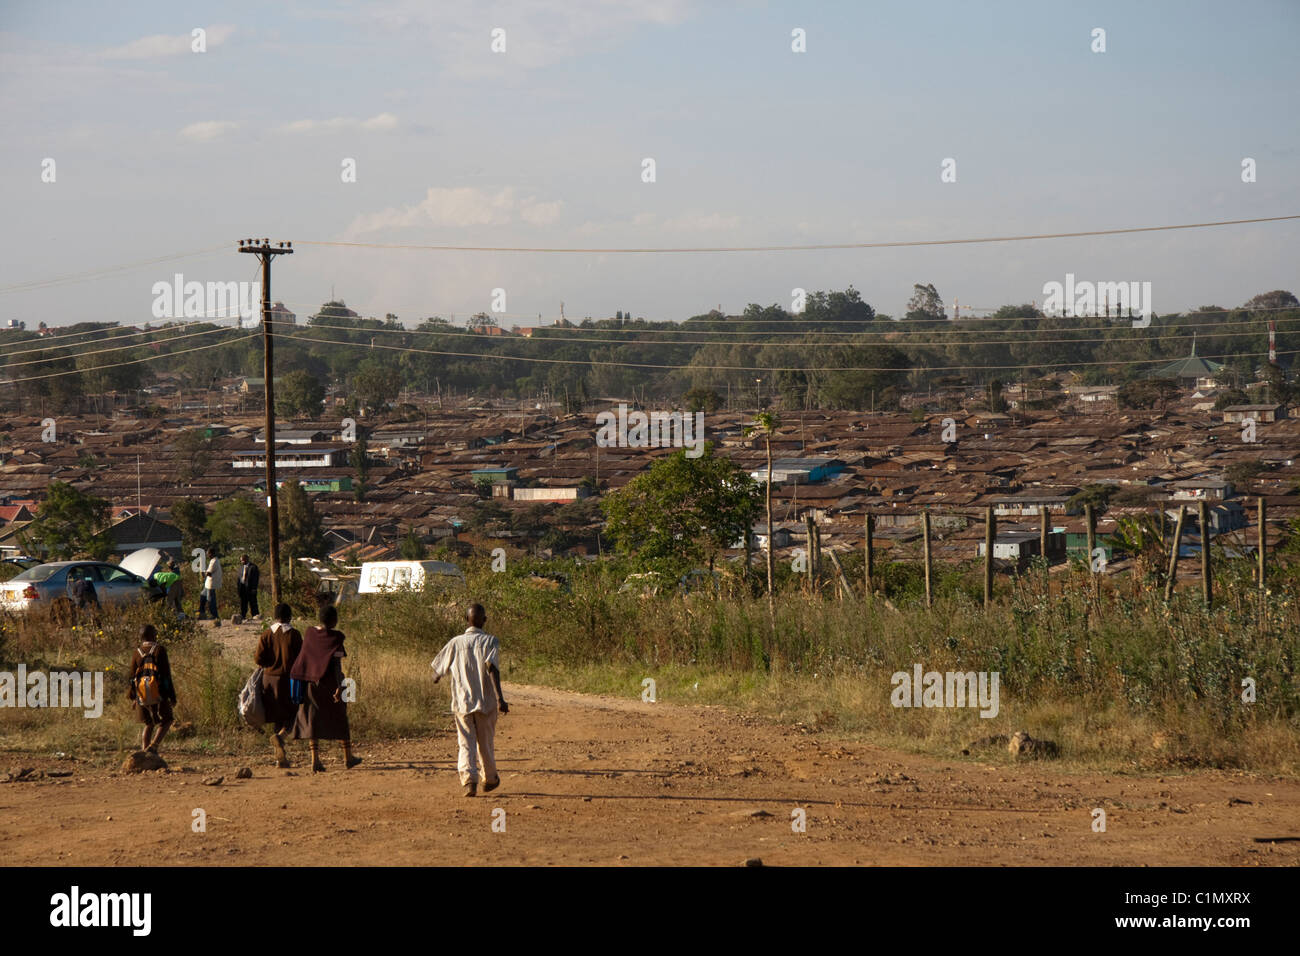 Slums in Nairobi, Kenya - Stock Image